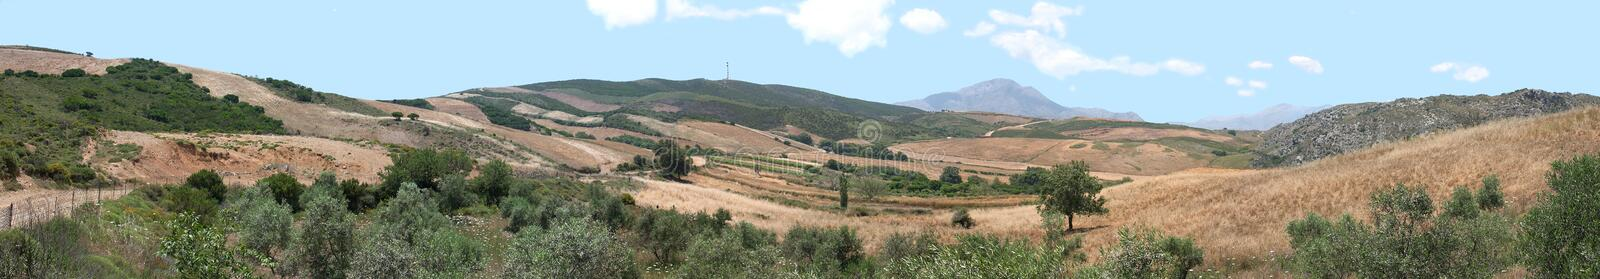 Download Cretan panorama stock photo. Image of island, hills, holiday - 42710